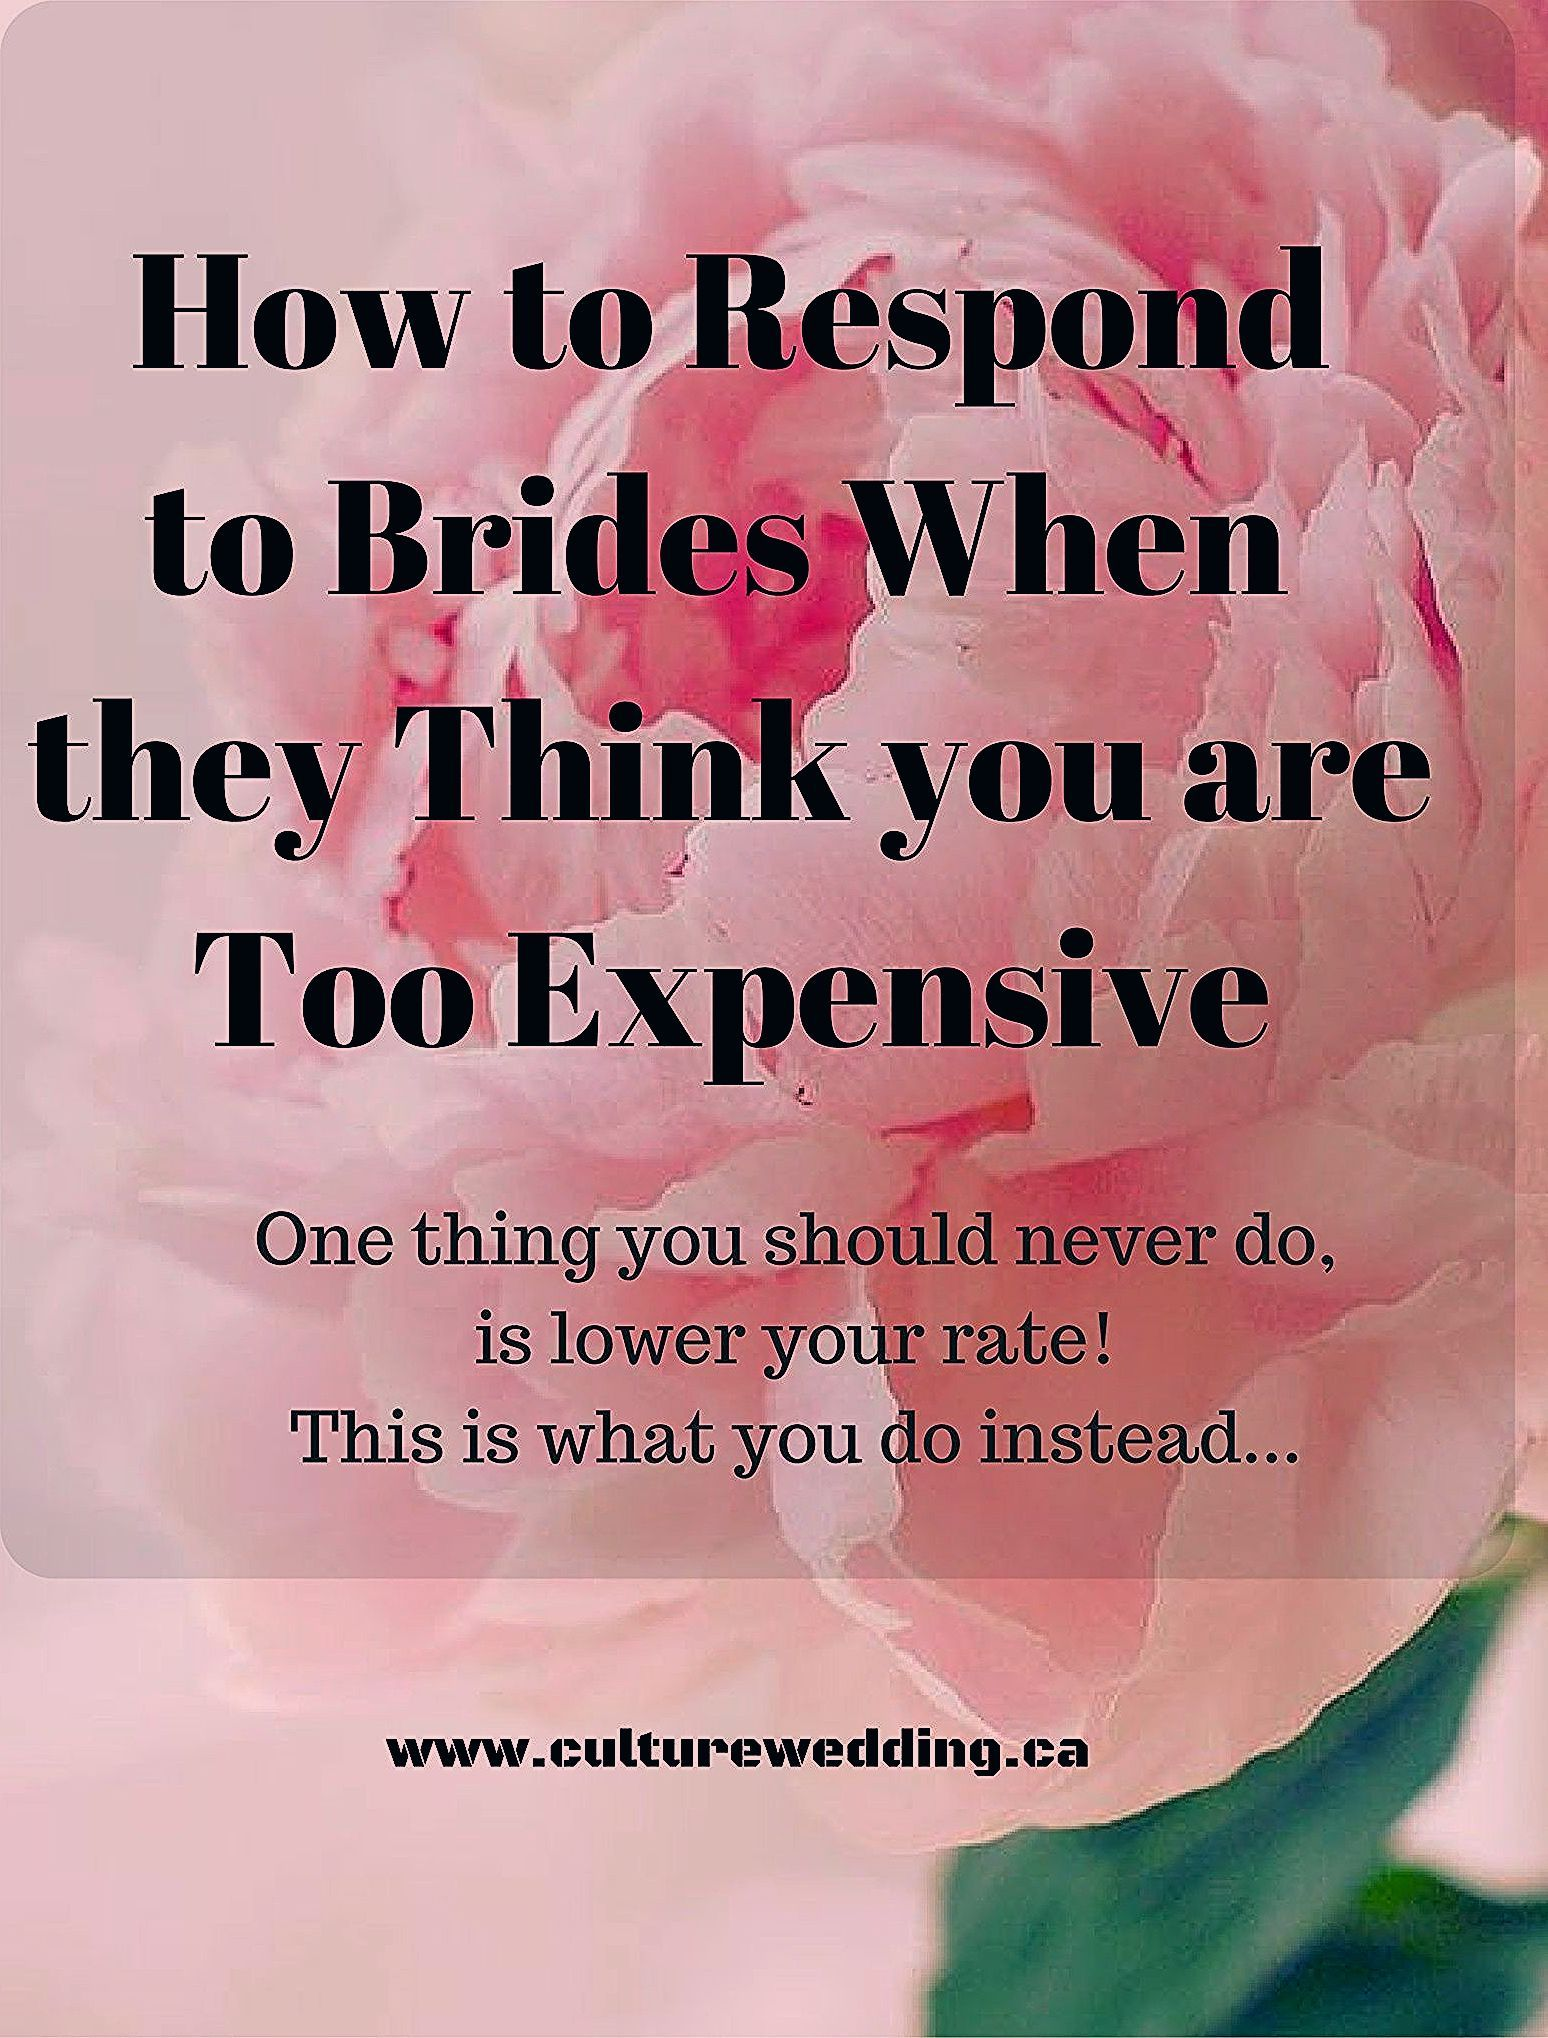 Photo of How to respond when brides think you are too expensive.